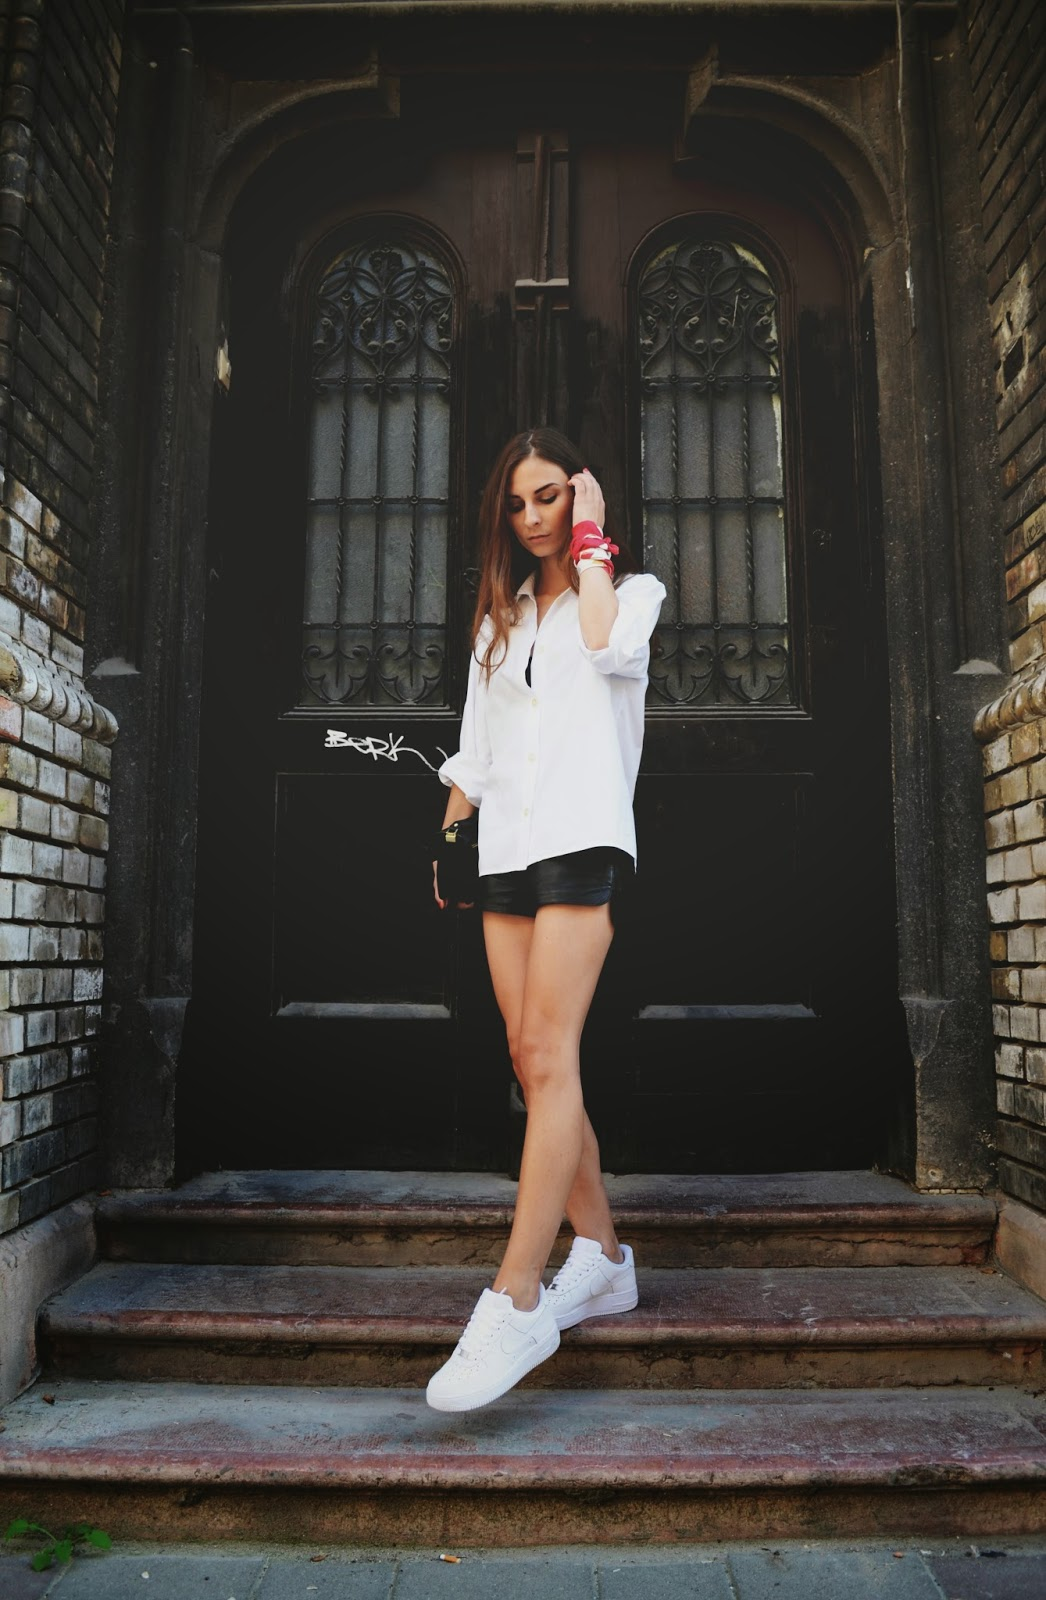 personal style blog venkavision wearing all white nike air force 1 loos white shirt and hm leather shorts 2.JPG